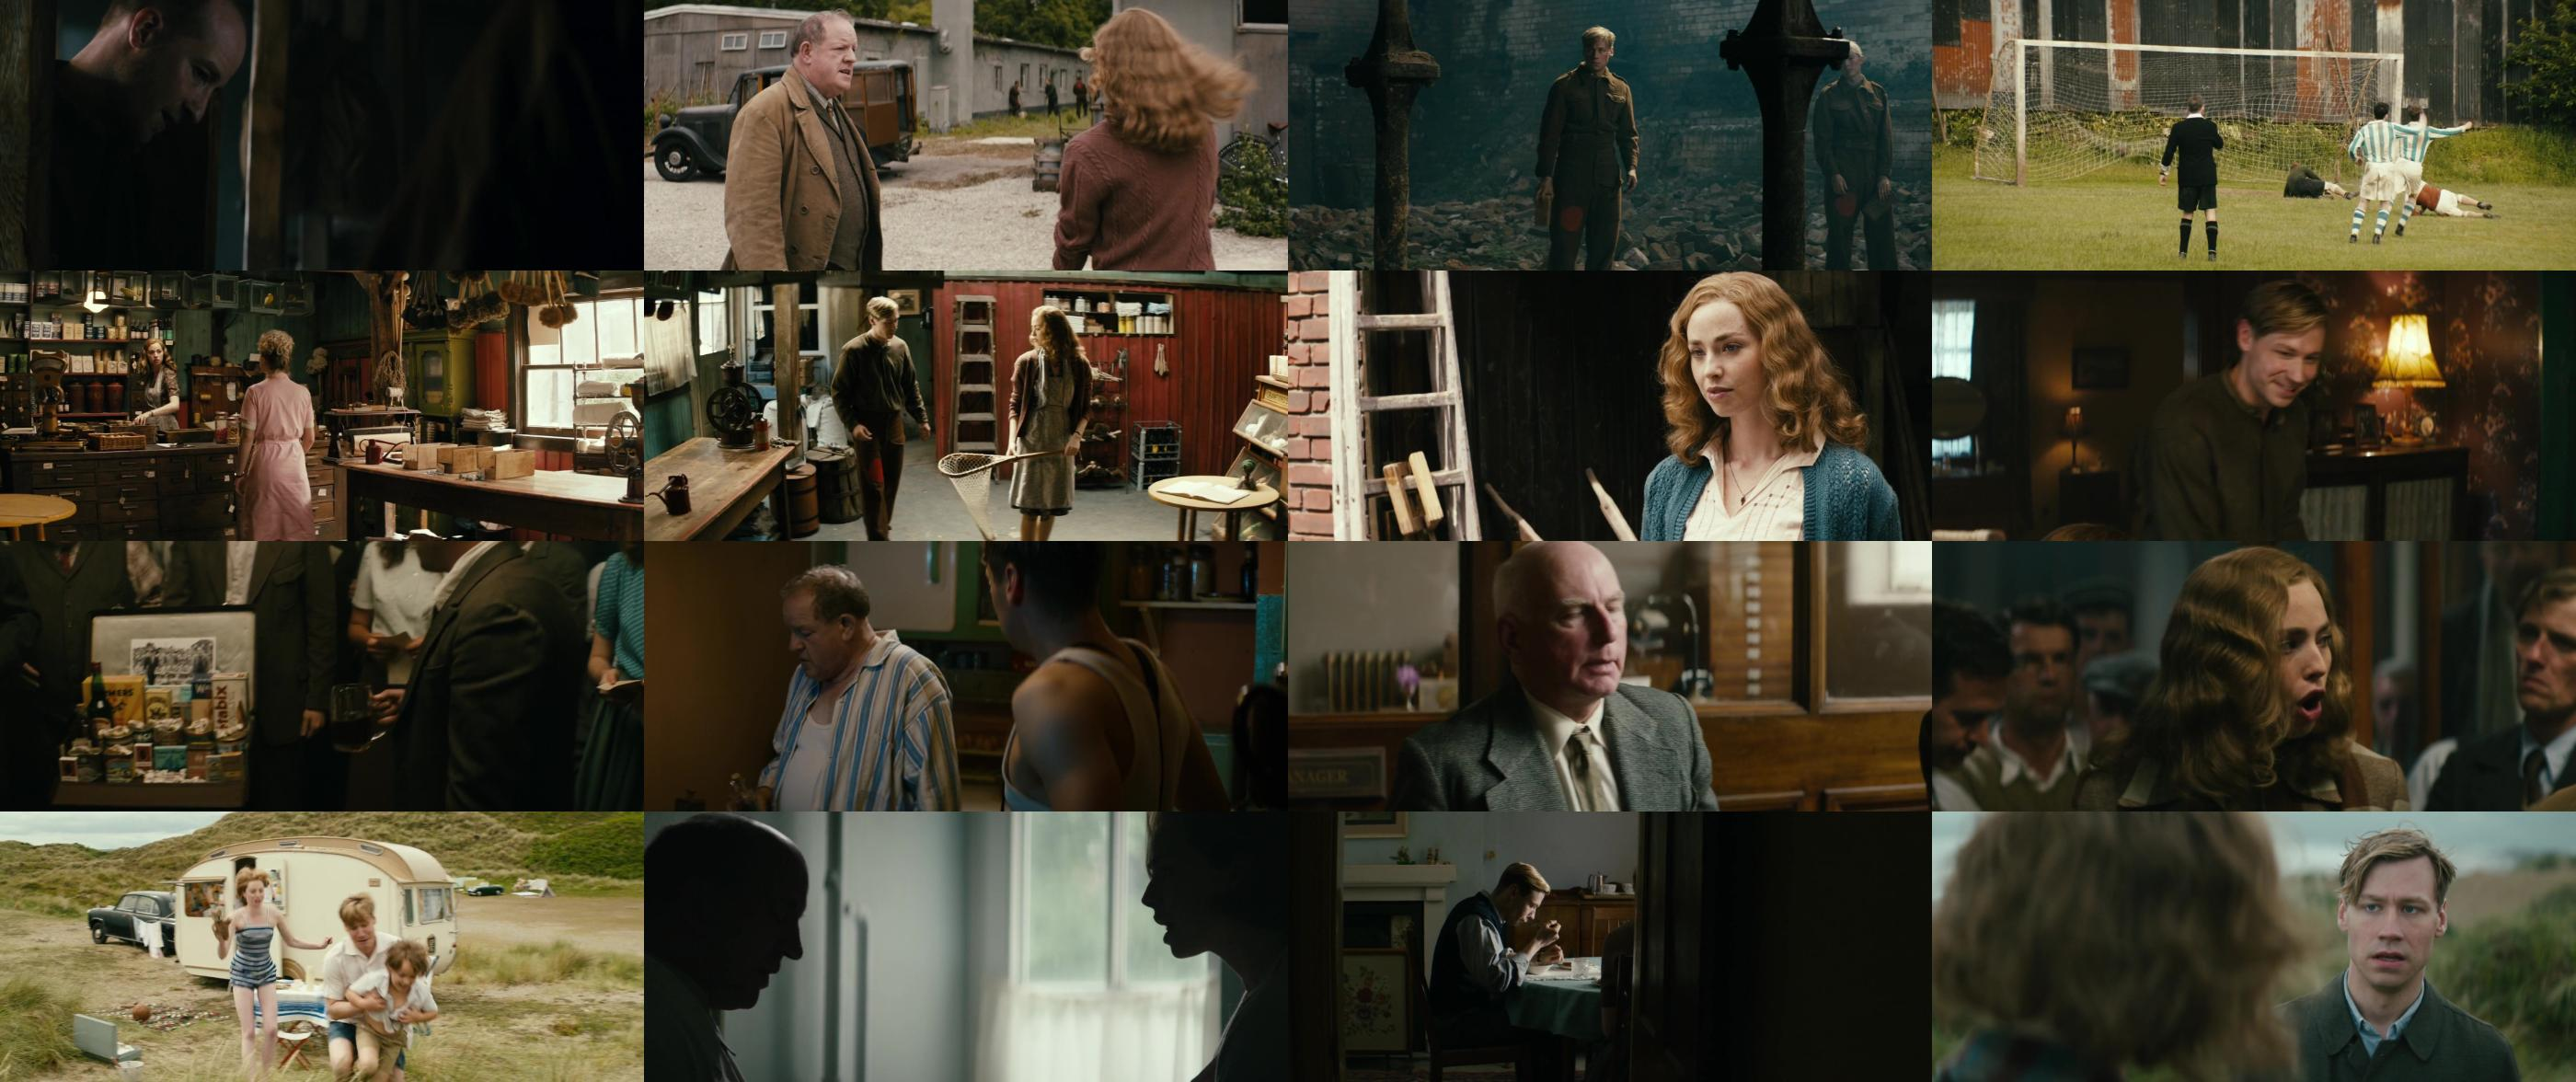 The Keeper (2018) WEBRip 1080p YIFY